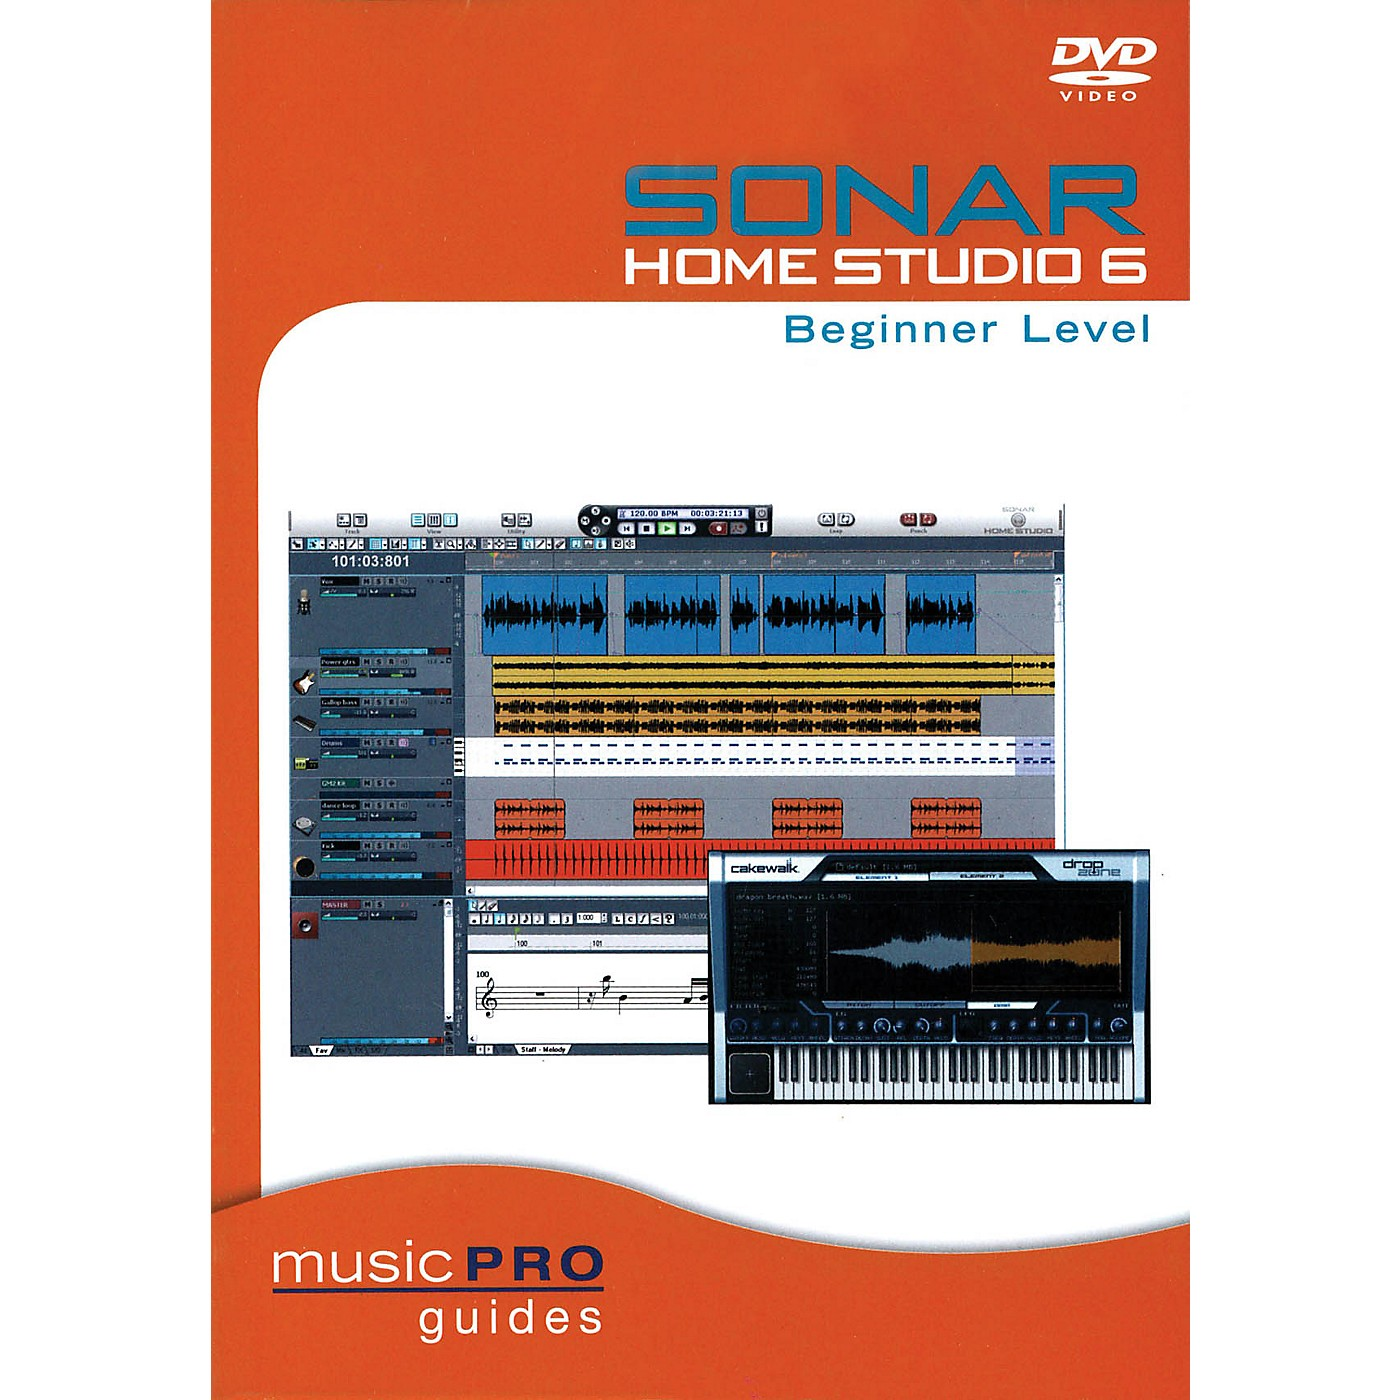 Hal Leonard SONAR Home Studio 6 Beginner Level (Music Pro Guides) Music Pro Guide Books & DVDs Series DVD by Various thumbnail